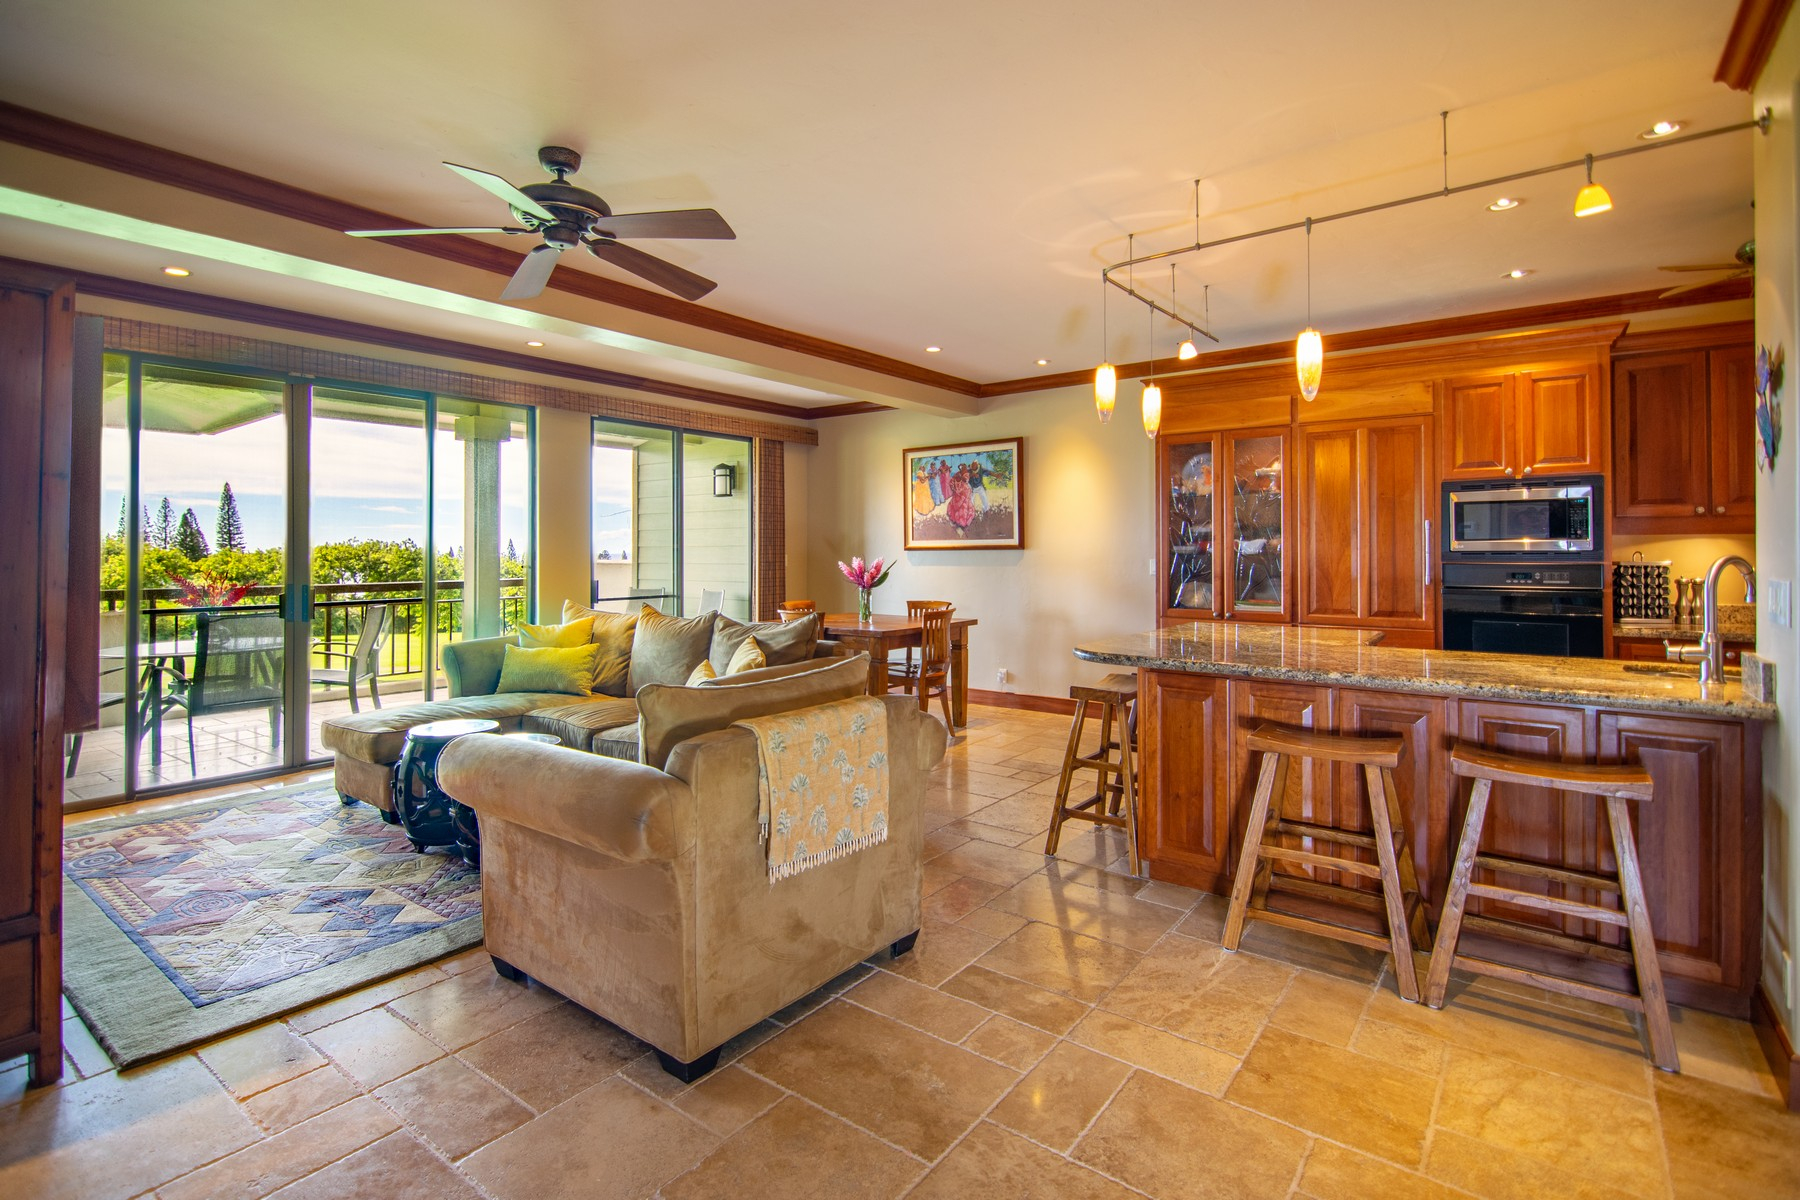 Condominiums για την Πώληση στο Tremendous Quality Corner Location with Golf Course Frontge 500 Kapalua Drive, Kapalua Golf Villas 18T1,2, Kapalua, Χαβαη 96761 Ηνωμένες Πολιτείες